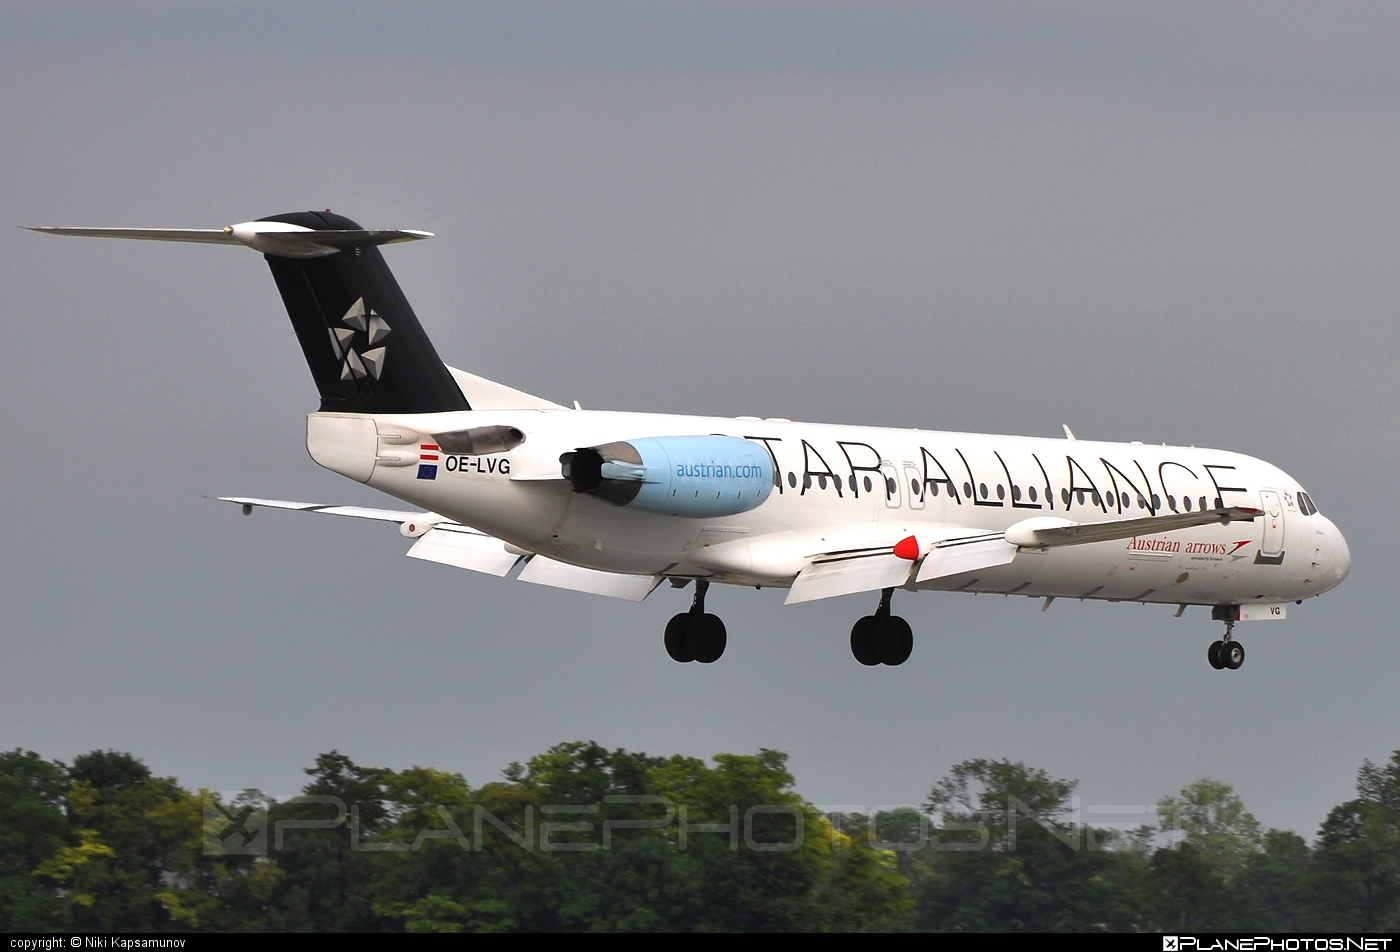 Fokker 100 - OE-LVG operated by Austrian arrows (Tyrolean Airways) #fokker #staralliance